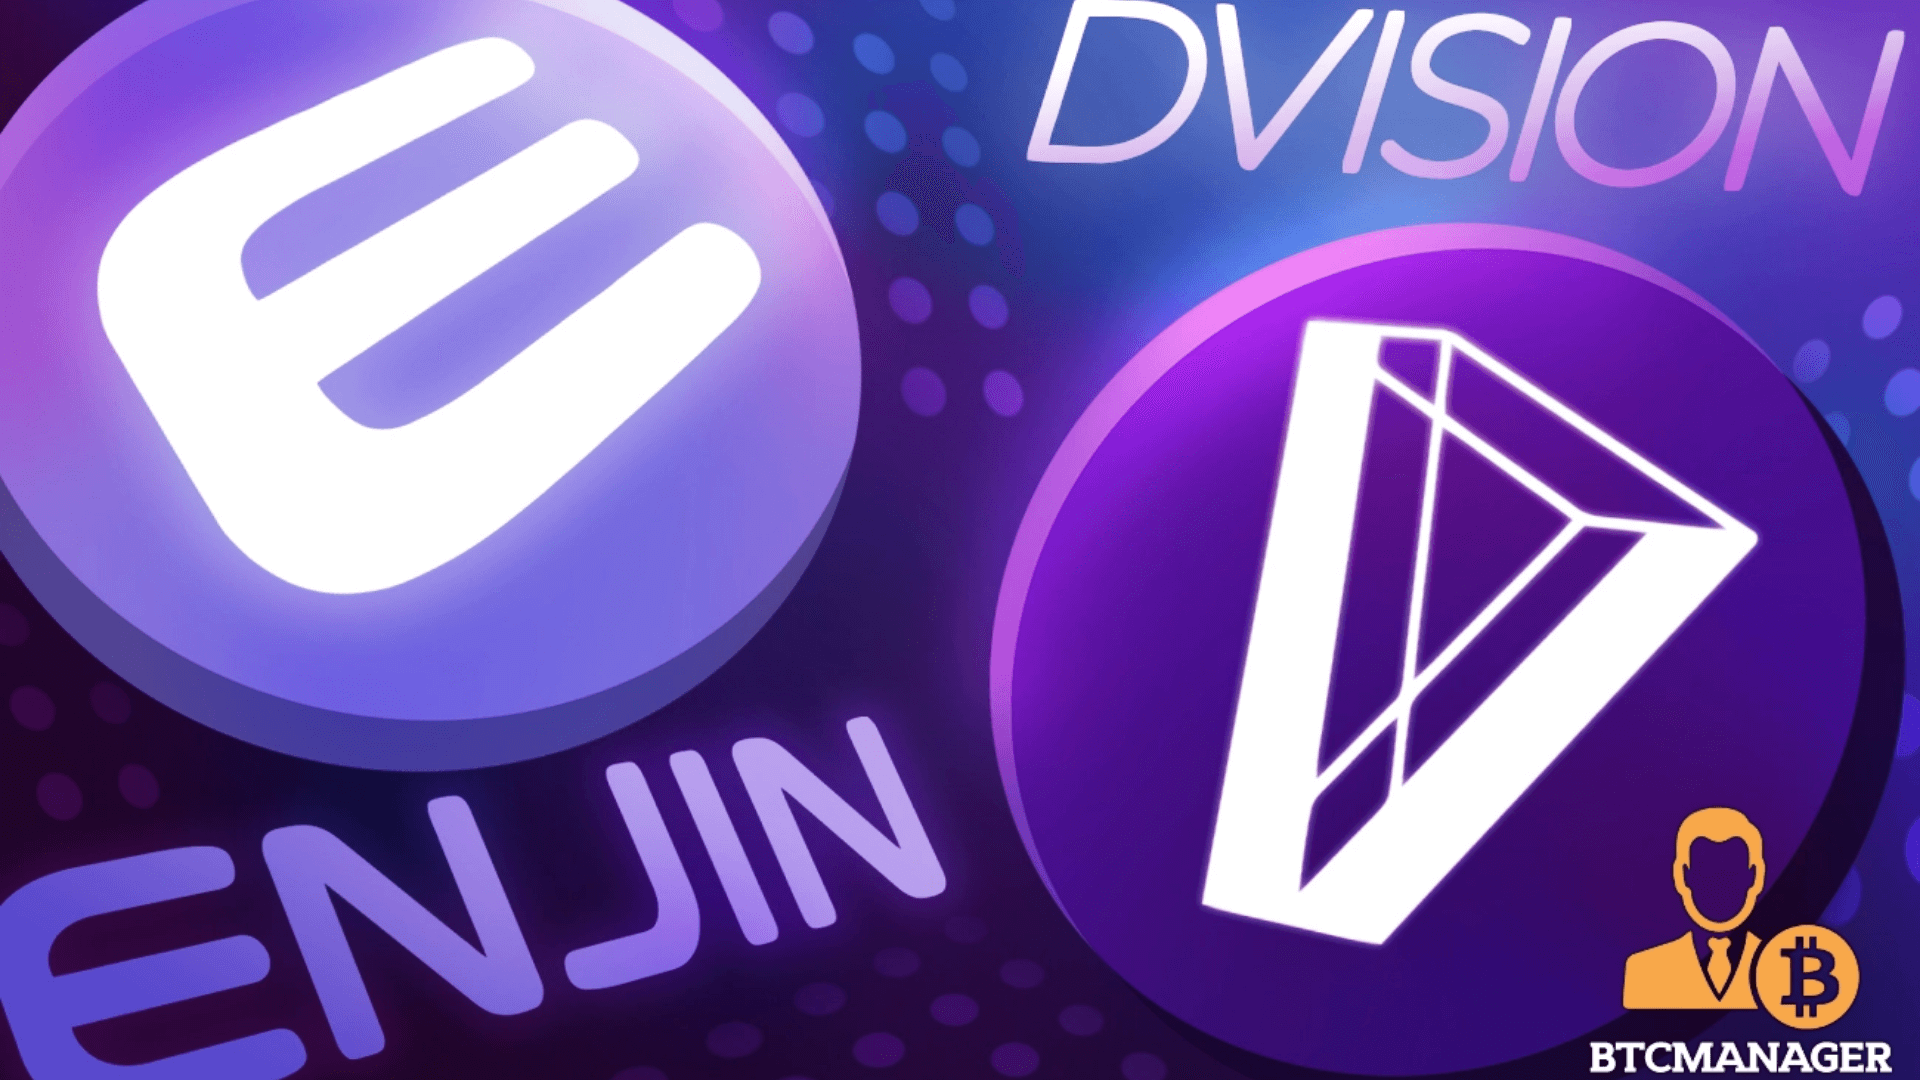 Dvision Network to Launch Metaverse on Enjin's Carbon-Negative JumpNet Network